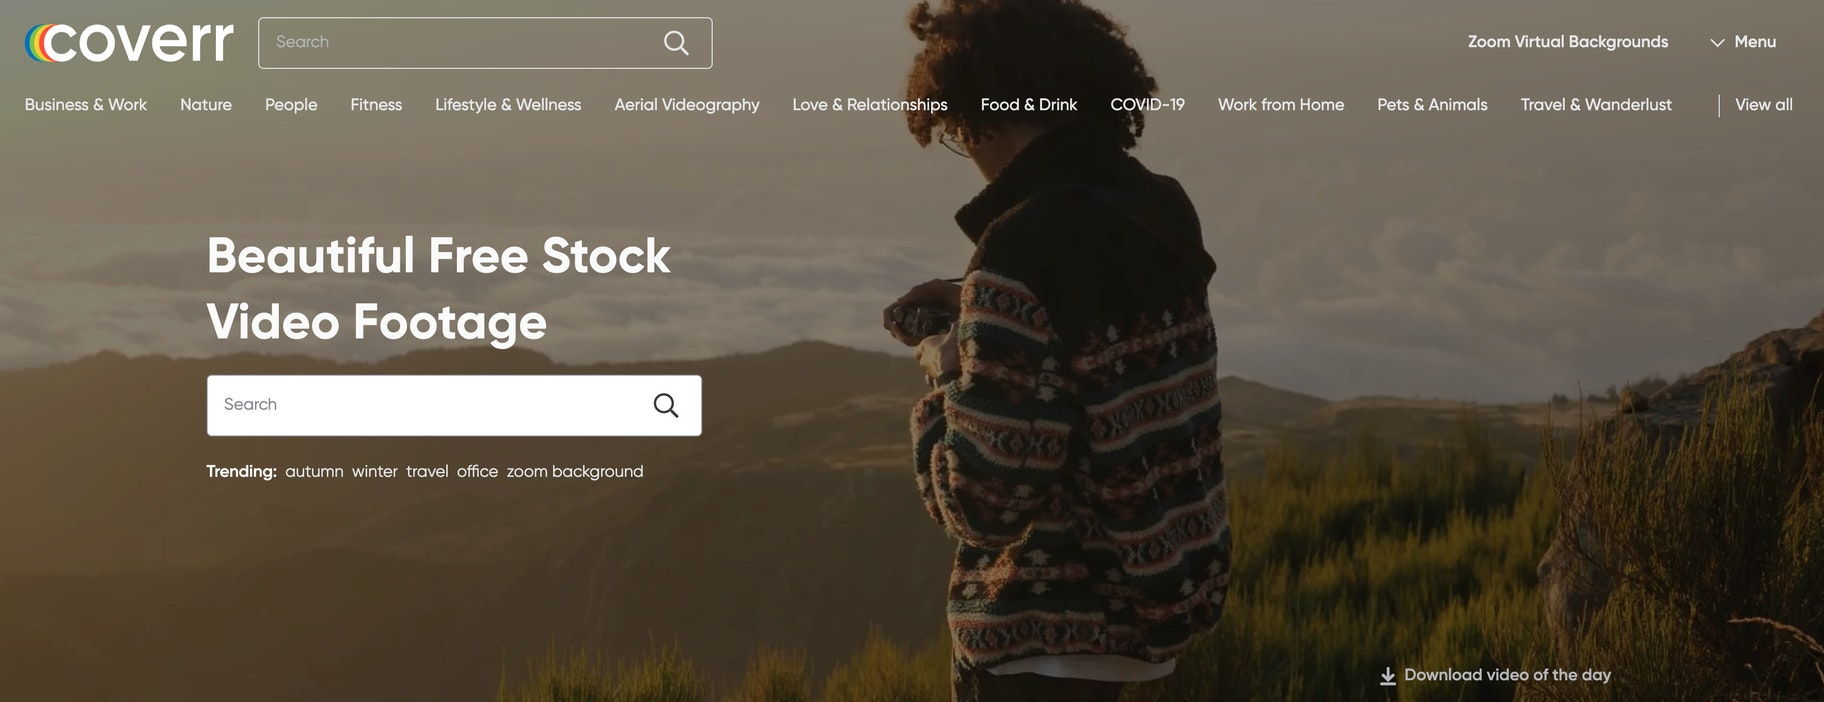 coverr free stock video site